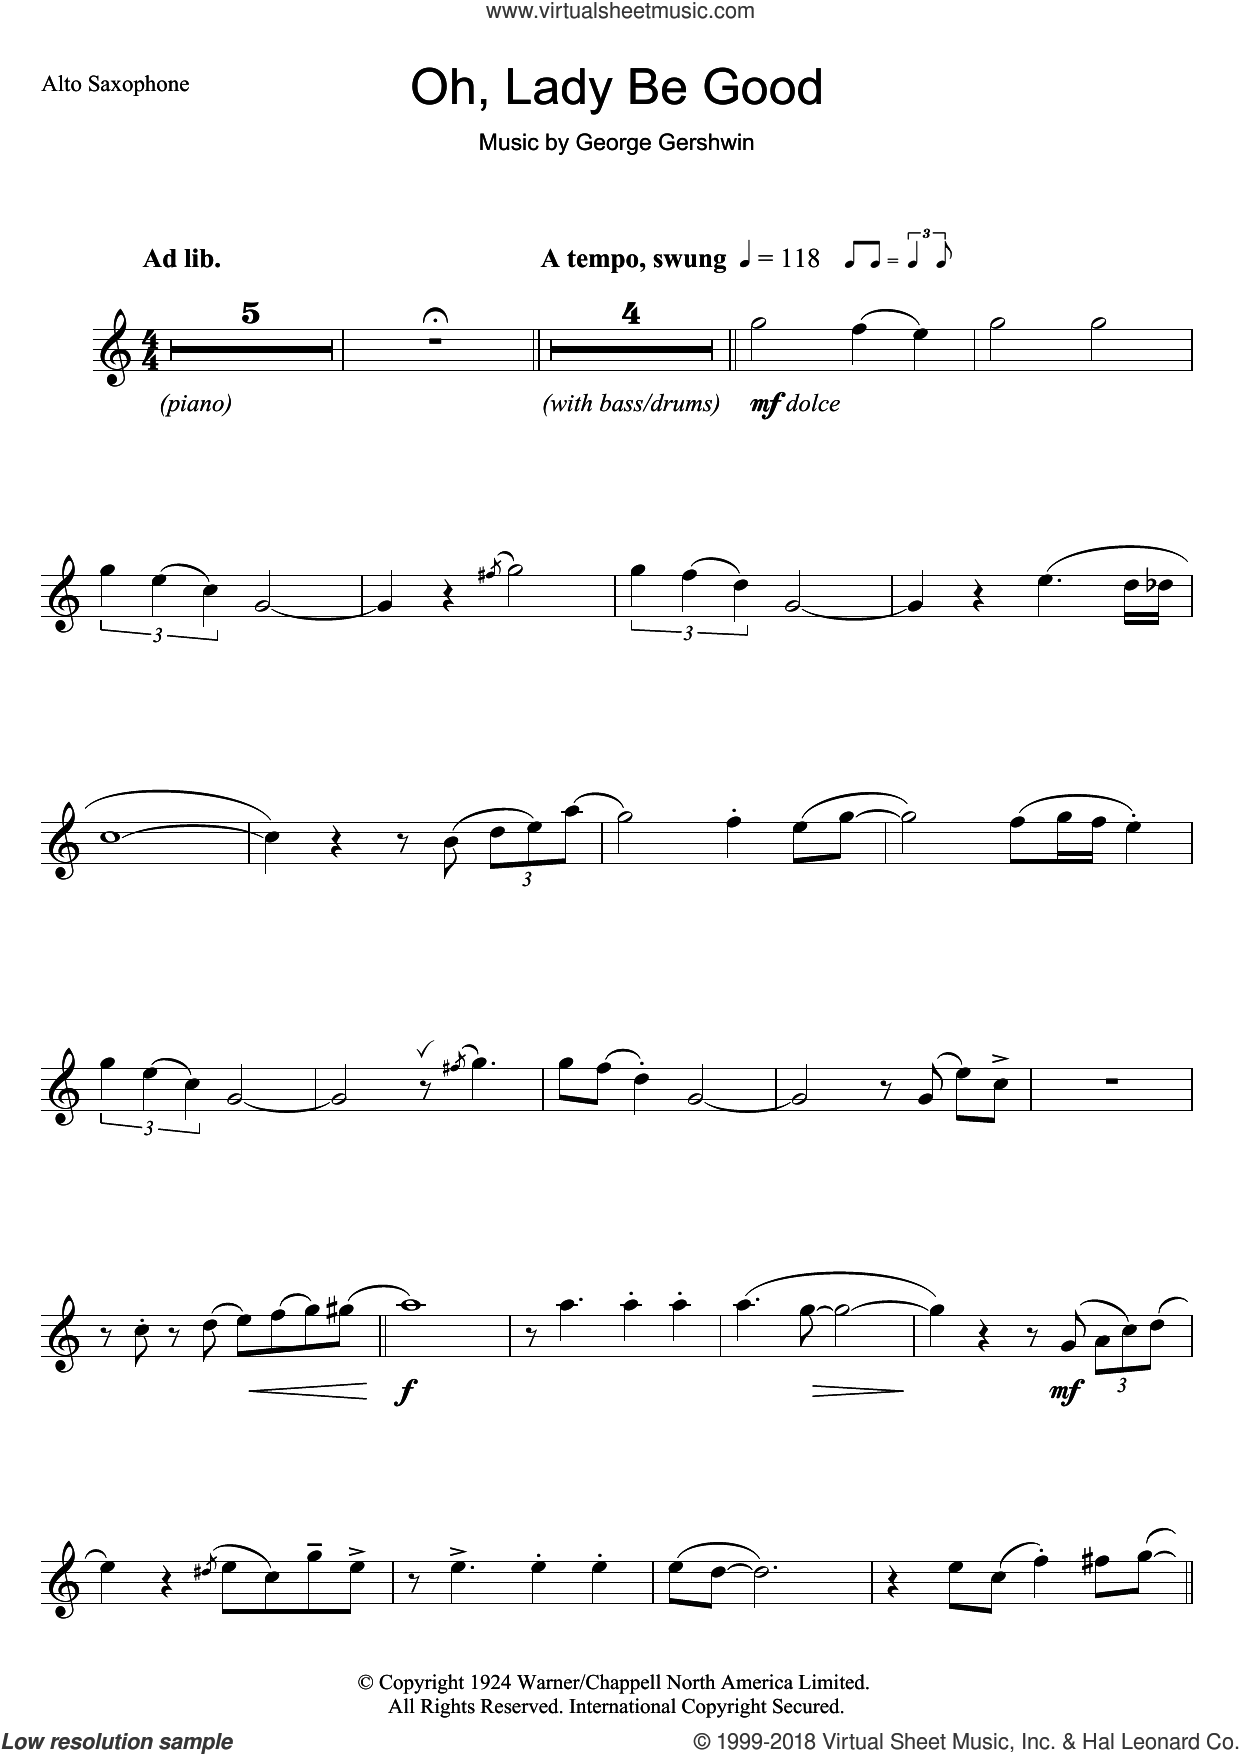 Oh, Lady, Be Good sheet music for alto saxophone solo by George Gershwin, intermediate skill level